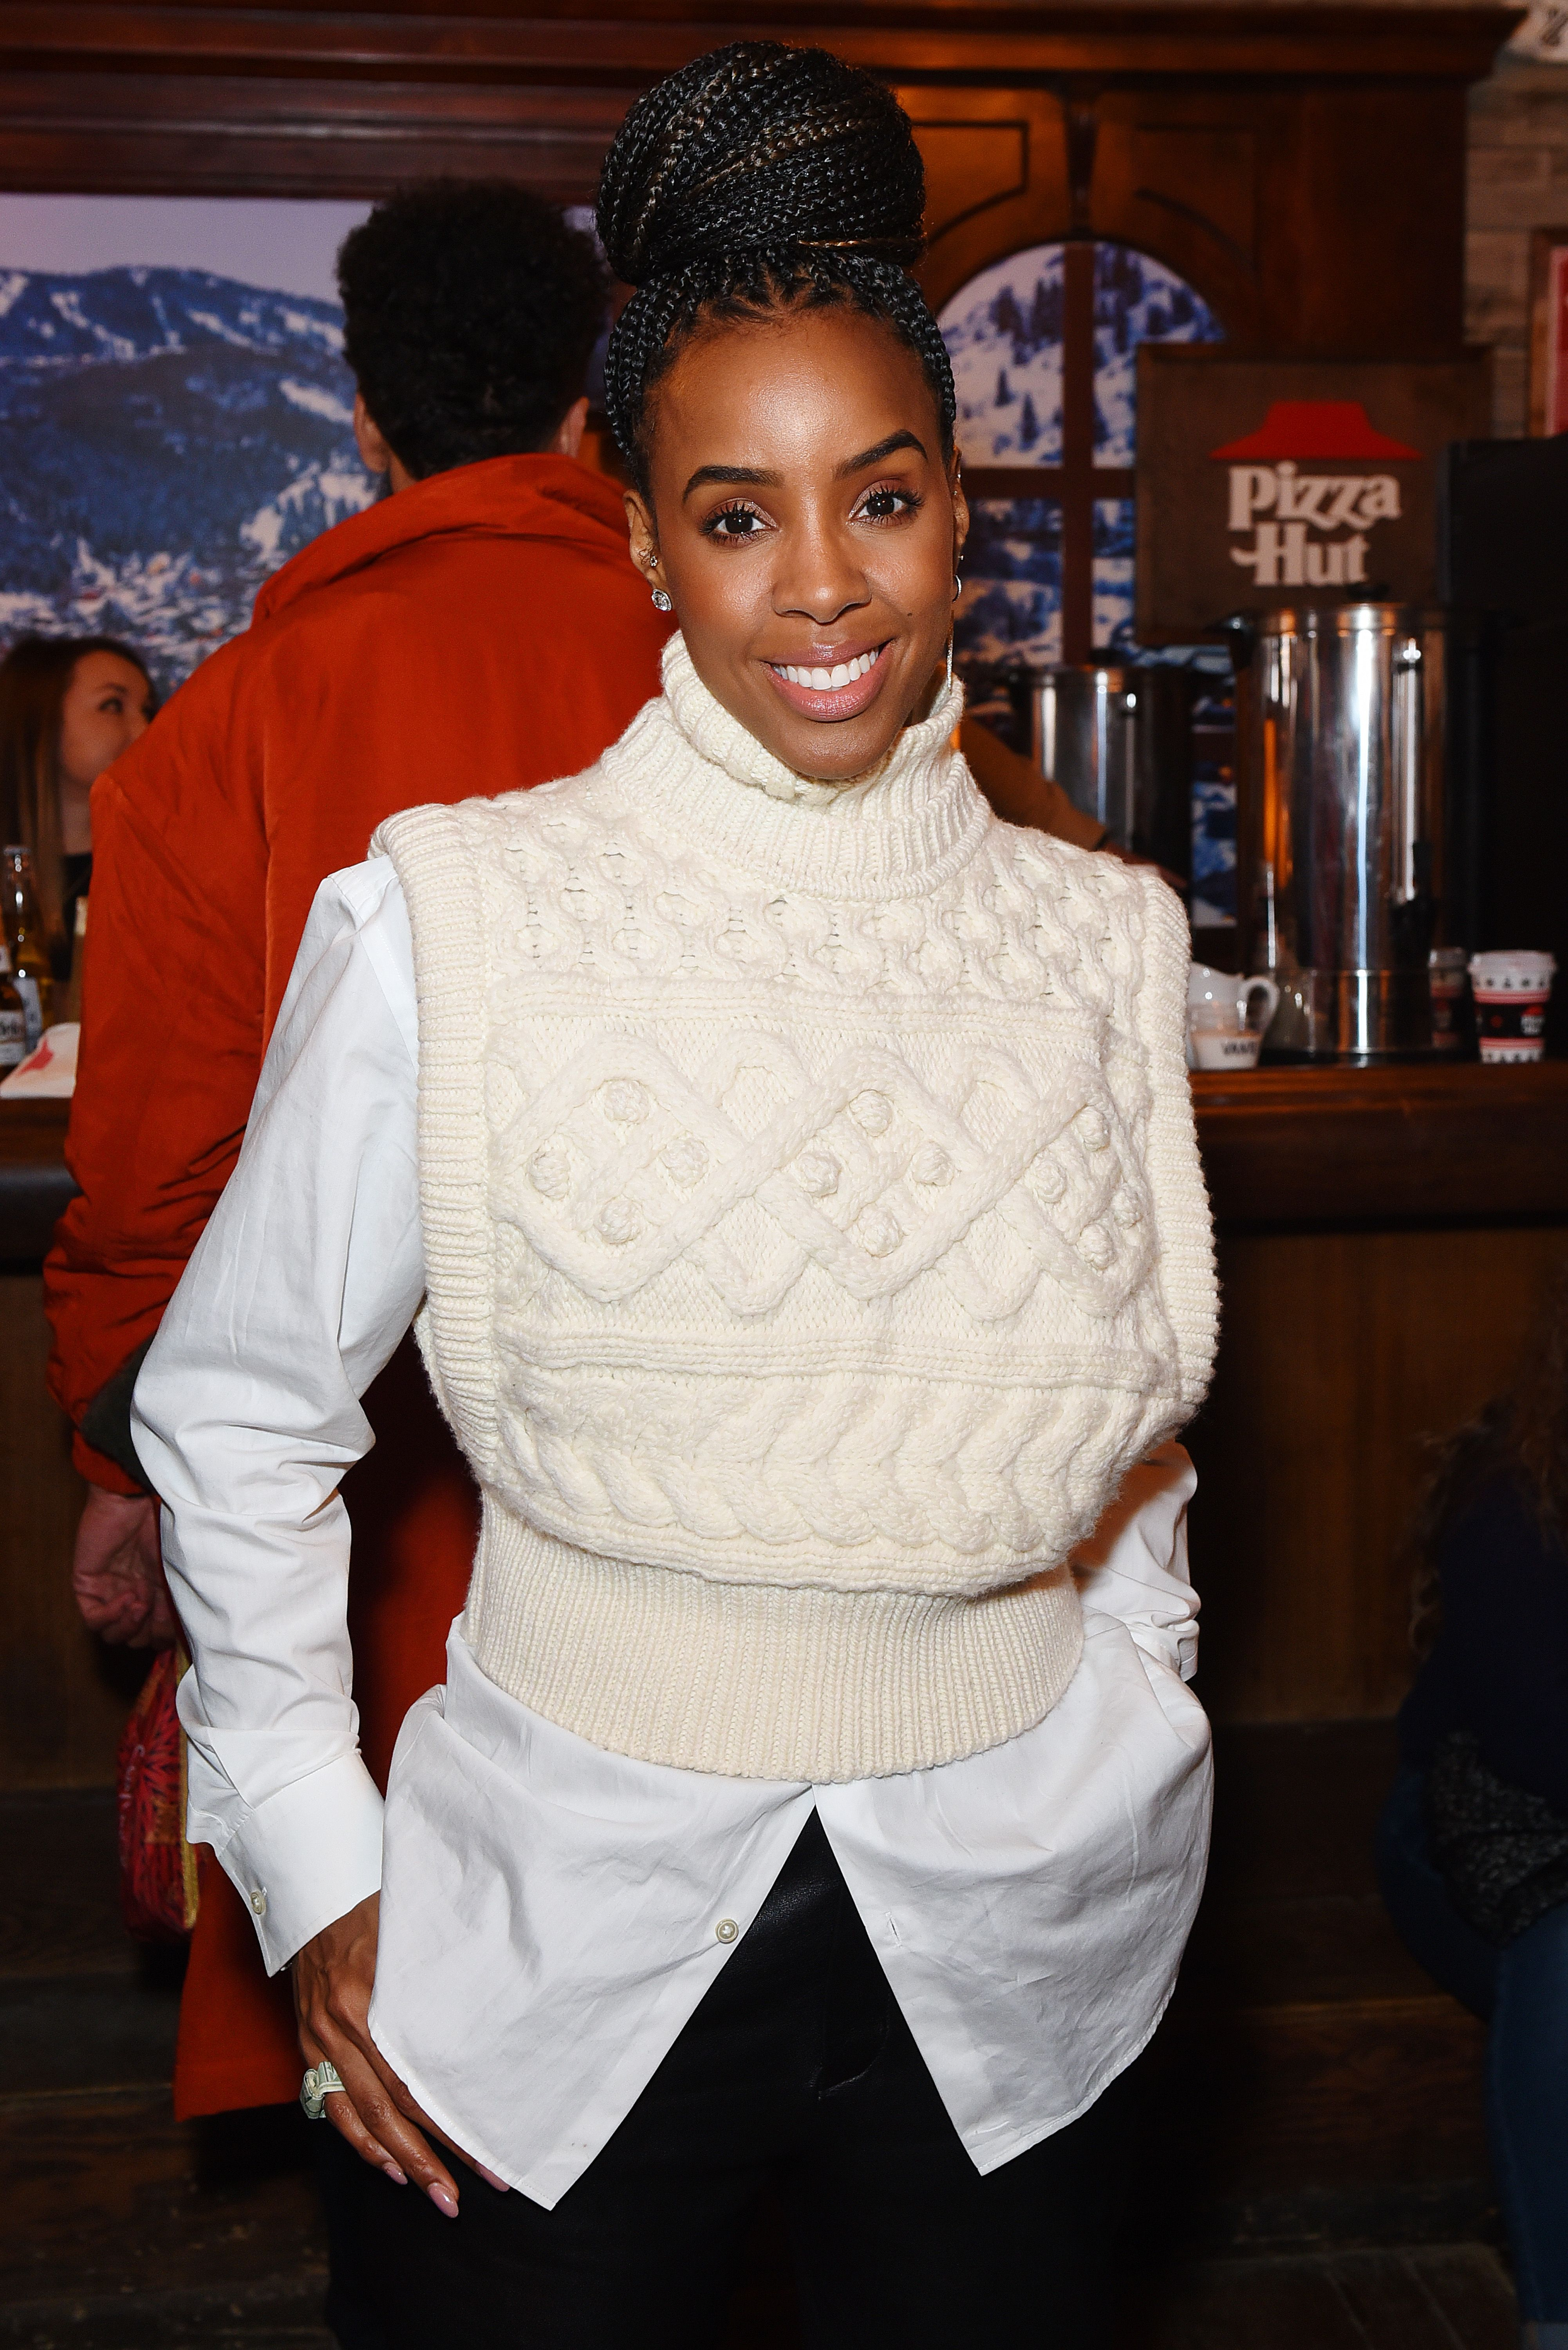 Kelly Rowland during the Pizza Hut x Legion M Lounge during the Sundance Film Festival on January 24, 2020 in Park City, Utah. | Source: Getty Images